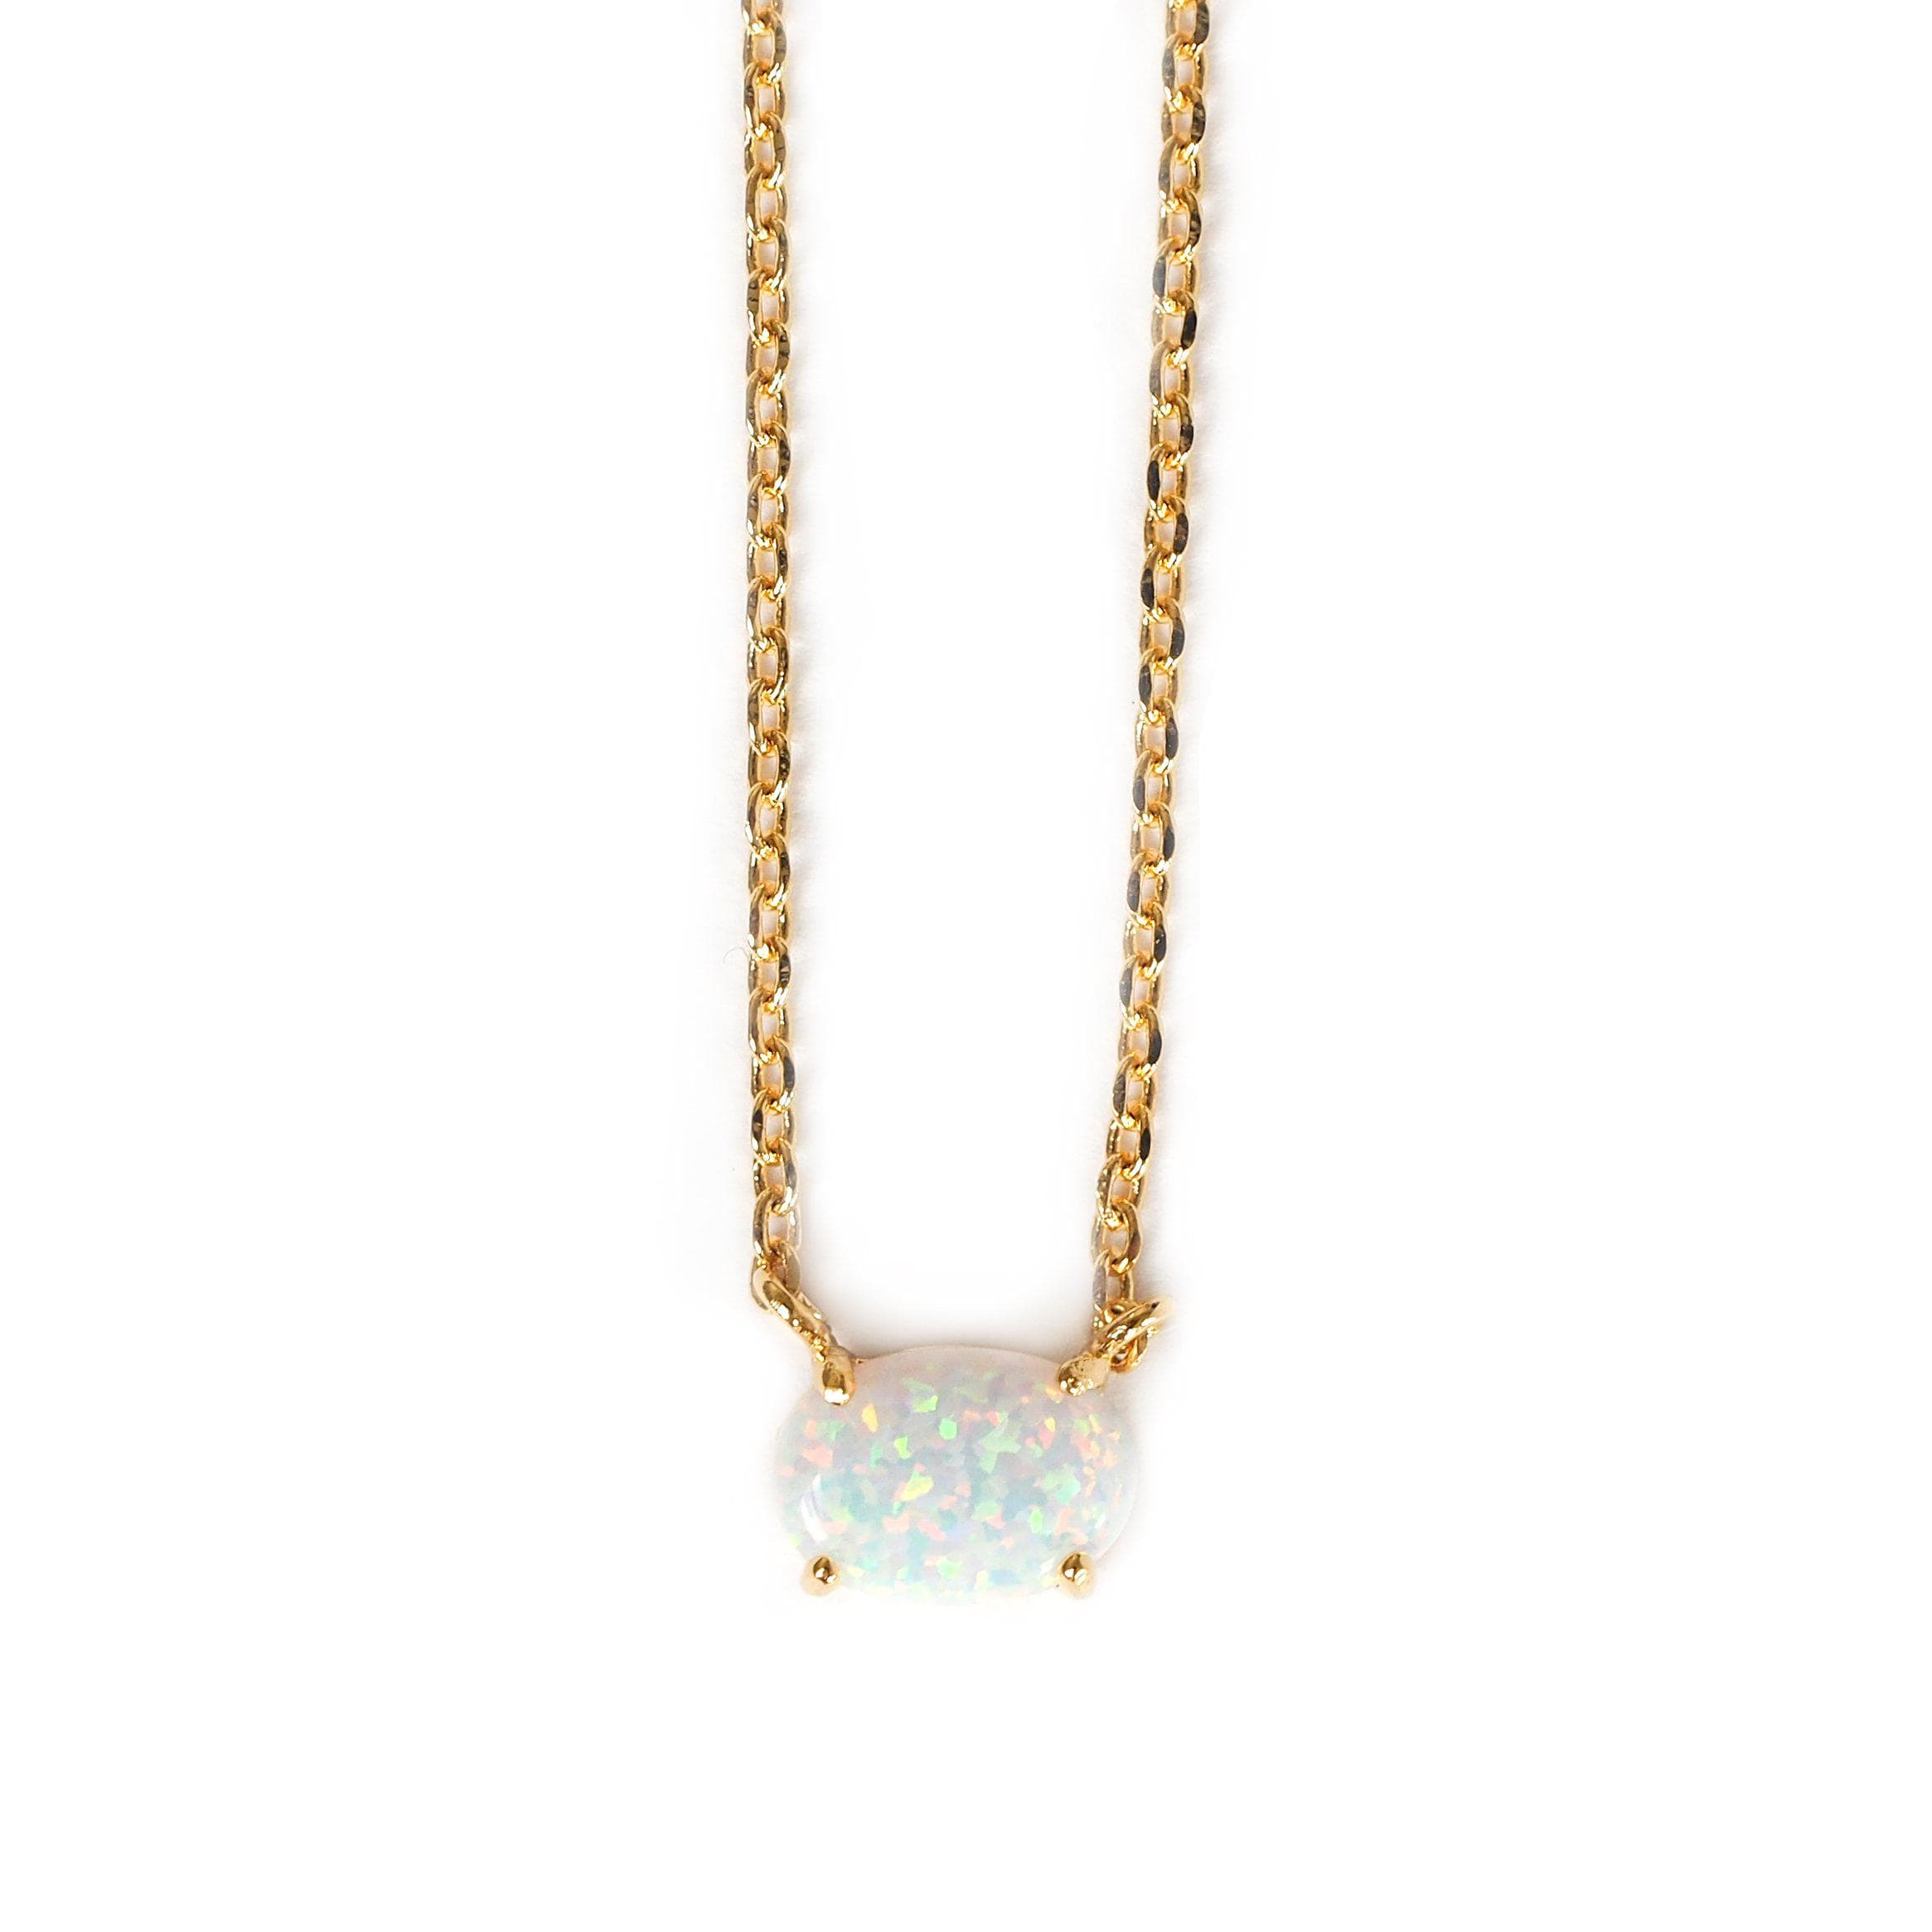 Opal Solitaire Necklace, Necklaces, adorn512, adorn512